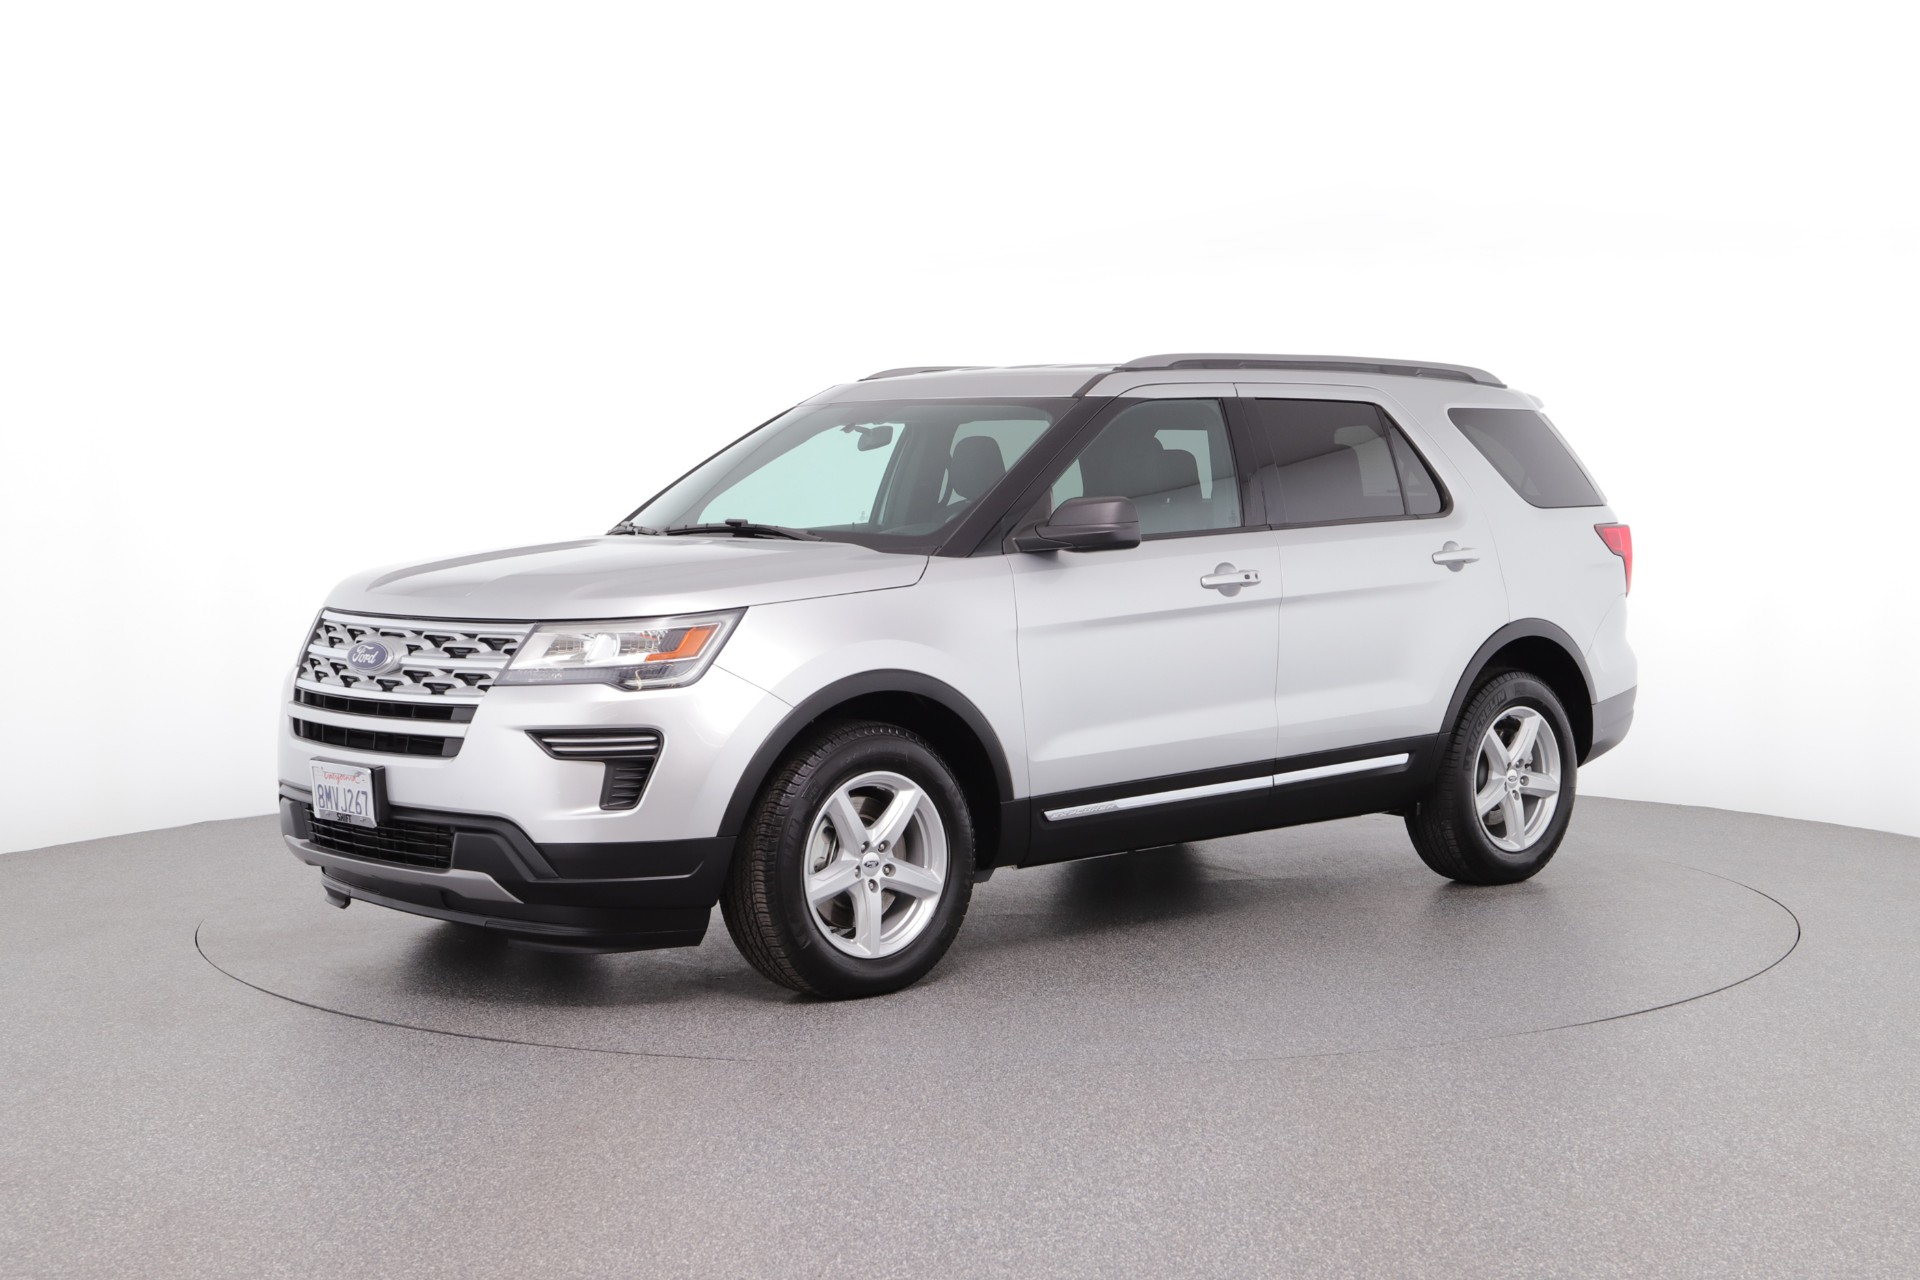 How Much Is A Ford Explorer?